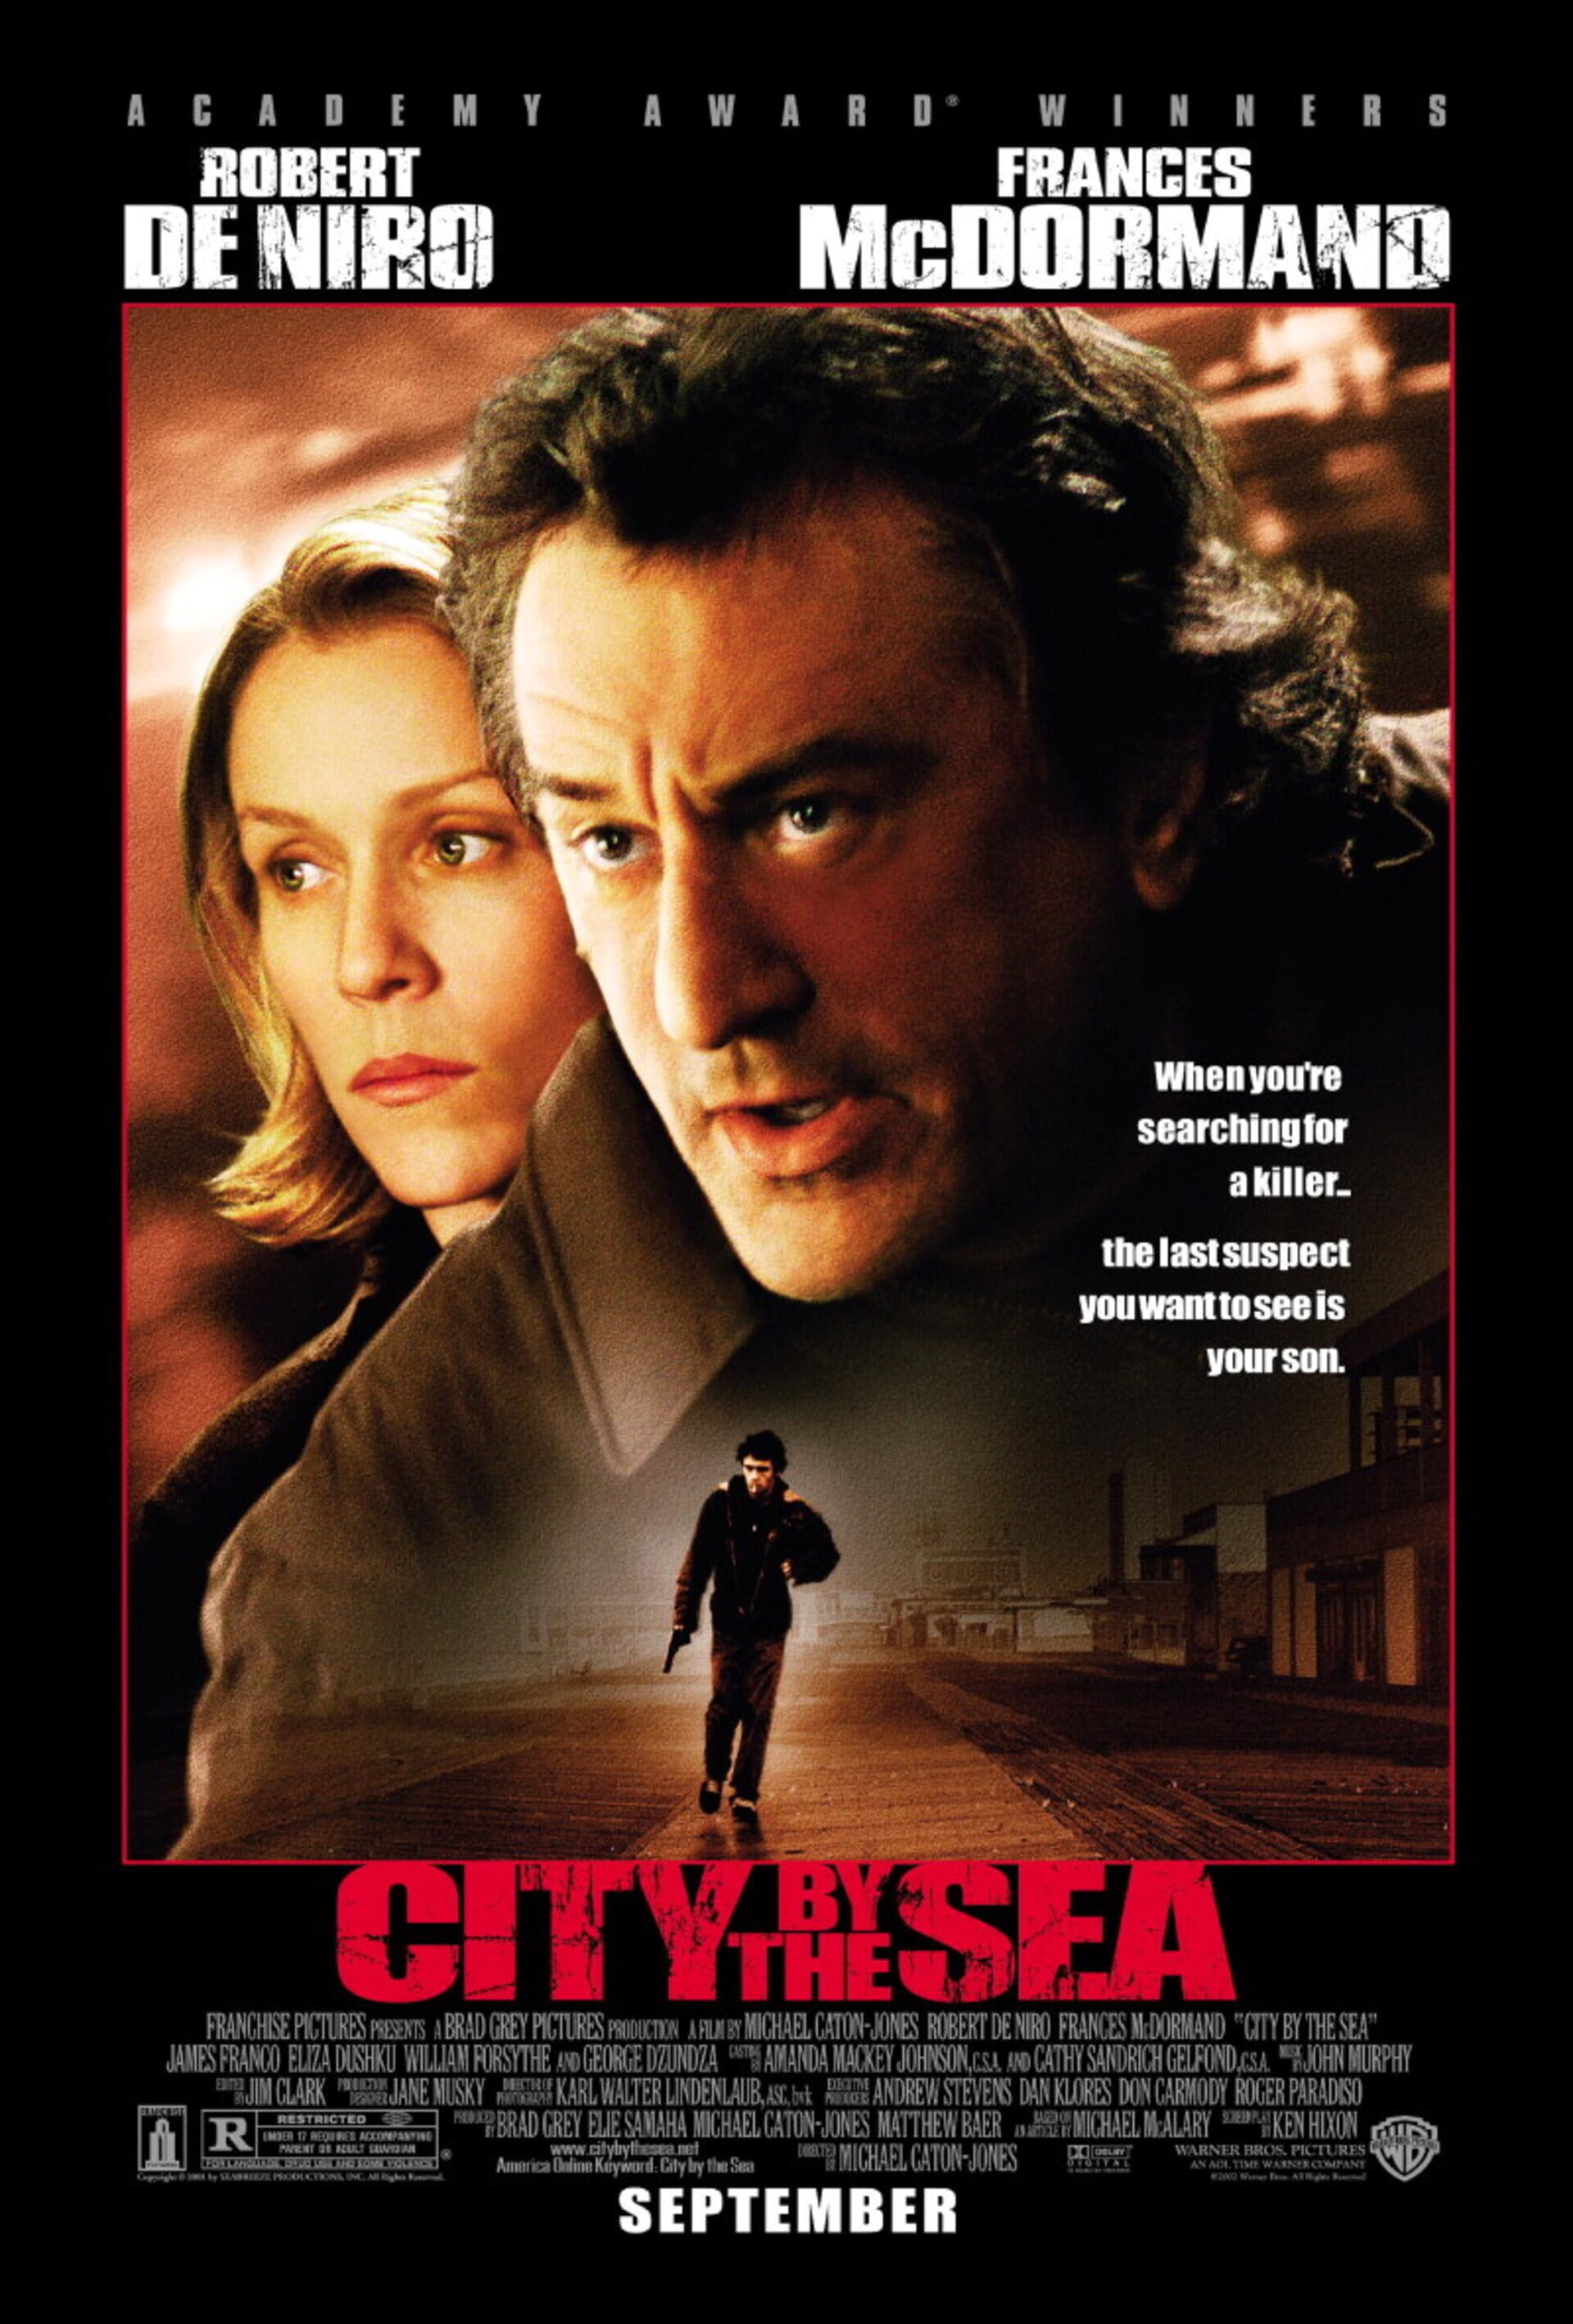 City by the Sea - Poster 1